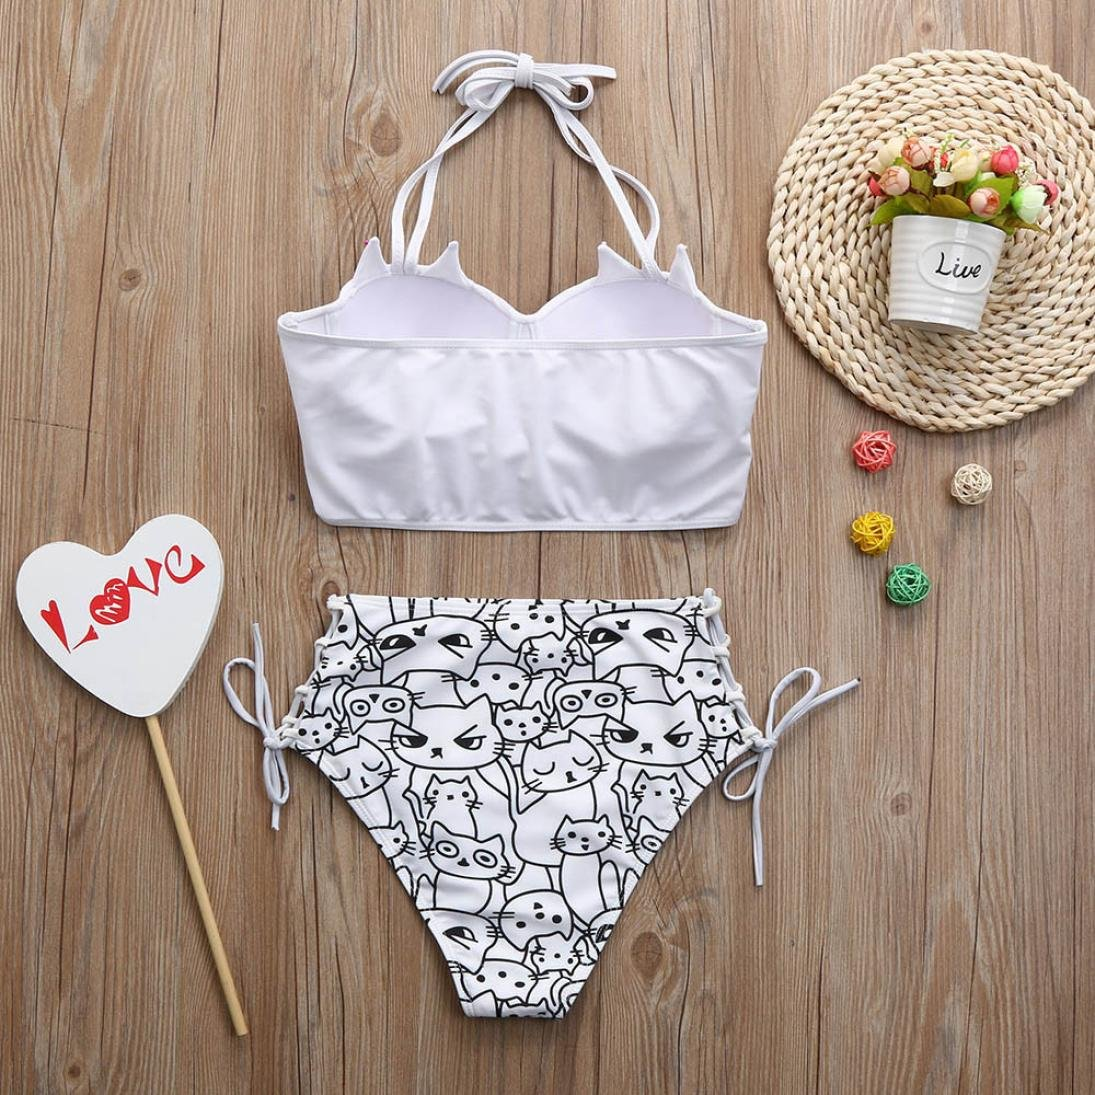 43aaf6eb6ced9 Amazon.com: Paymenow Clearance Women Girls Halter Padded Cute Cat Printed  Crop Top Bikini Two Pieces Swimsuit: Clothing